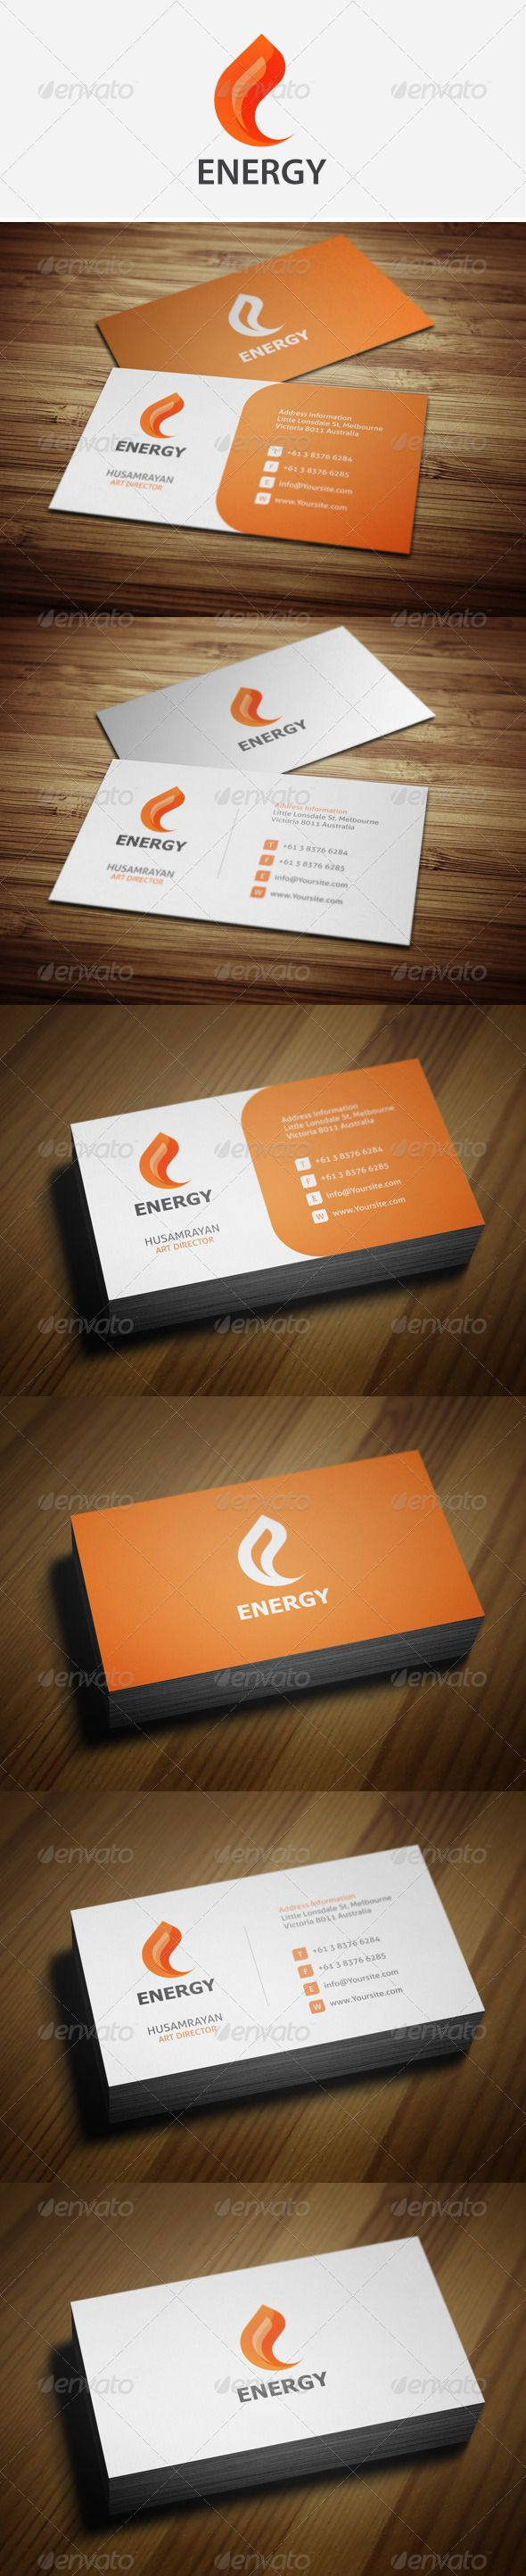 16 best simple business card mood board images on pinterest simple energy business cards reheart Image collections